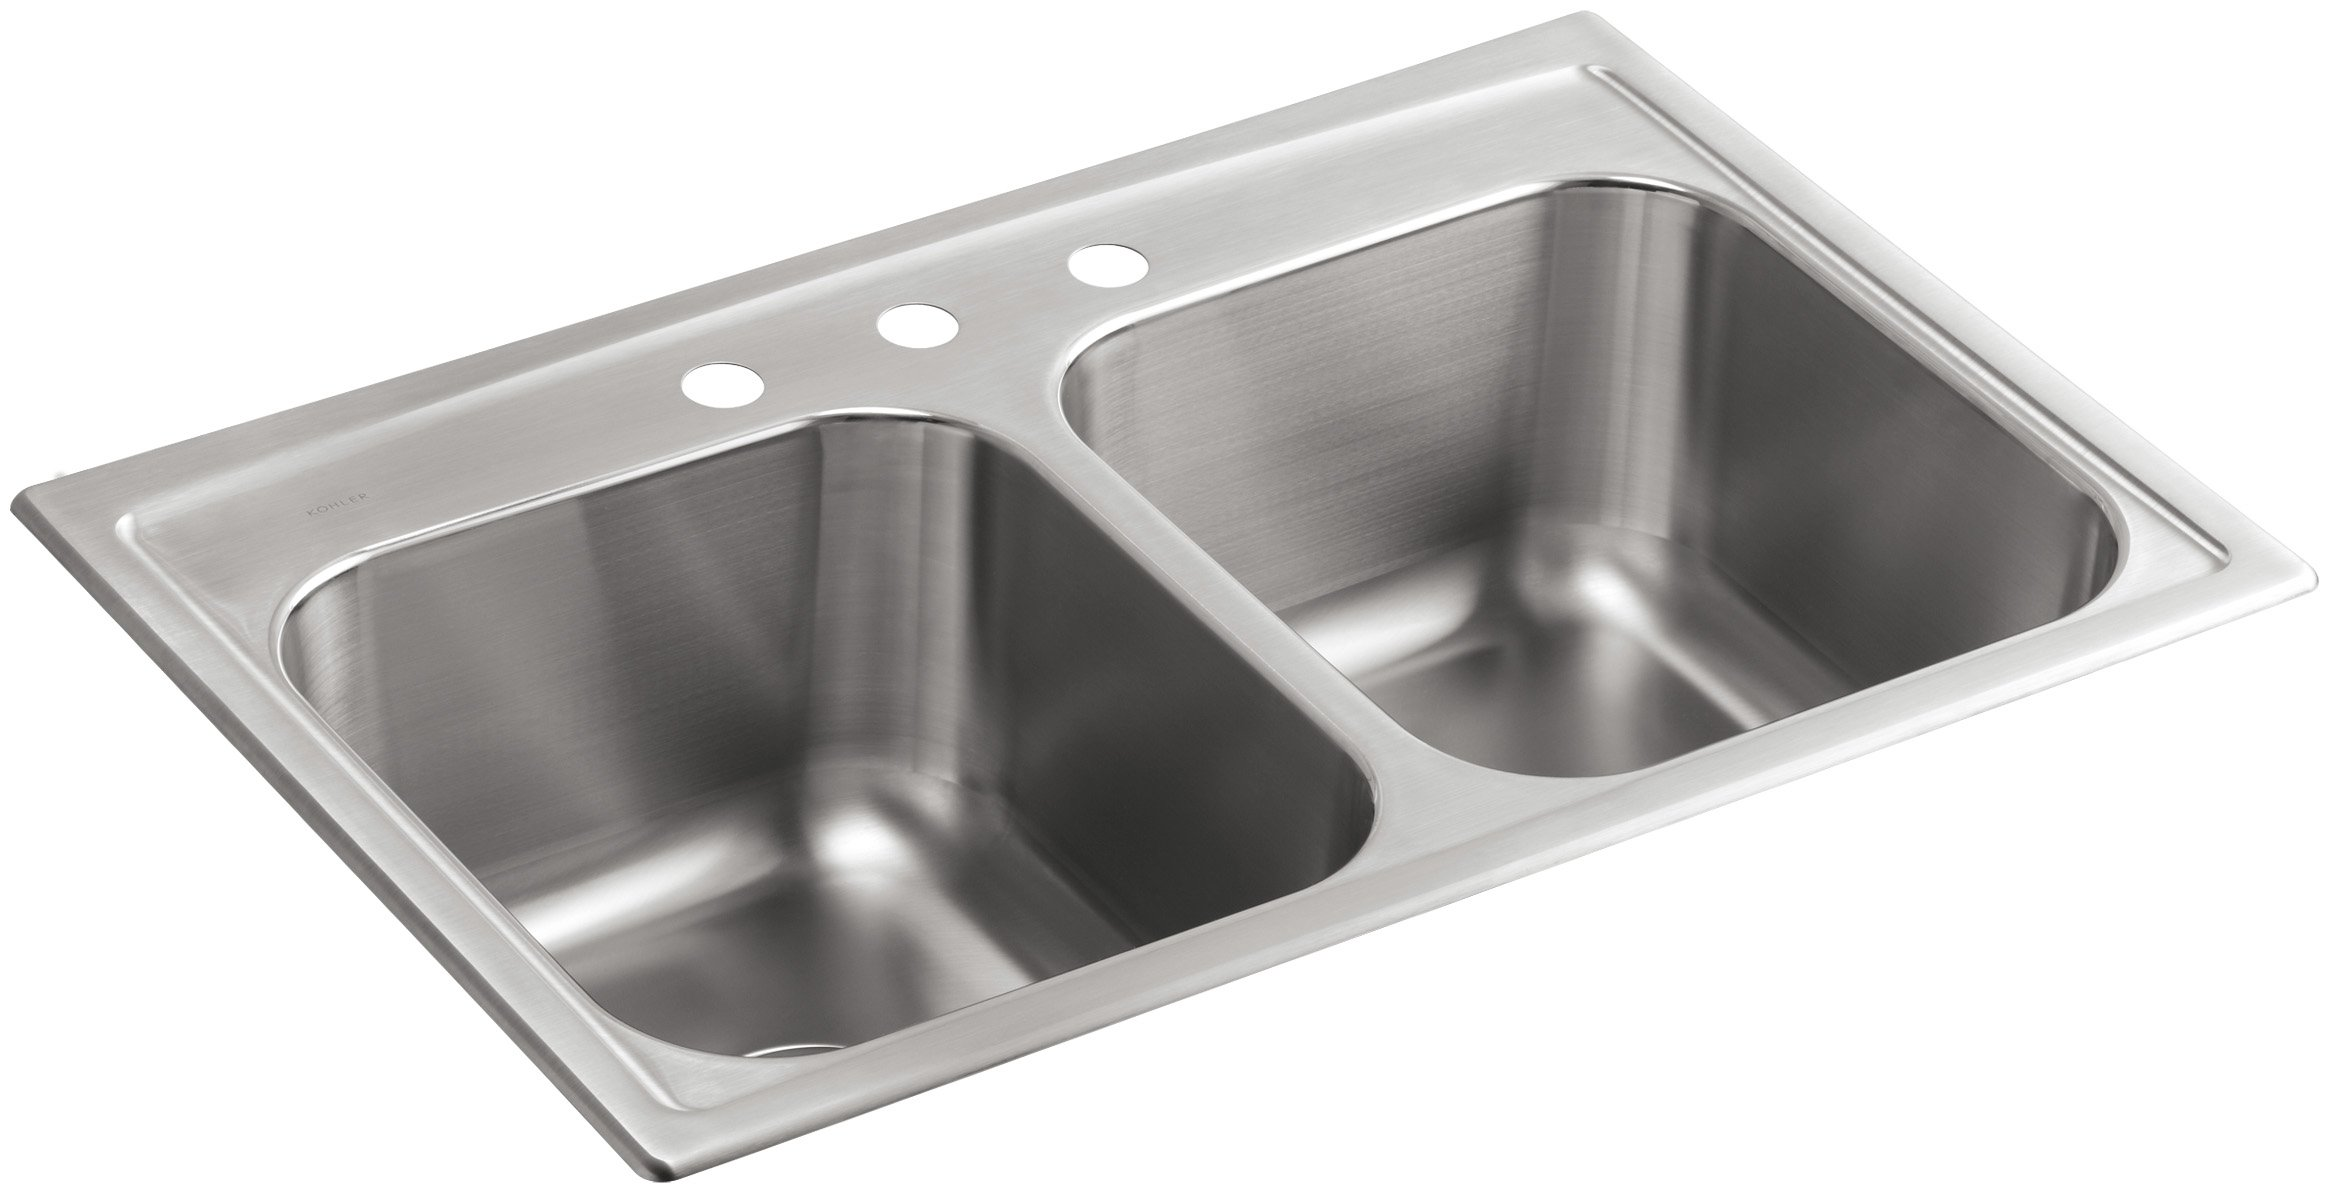 KOHLER K-3847-3-NA Toccata Top-Mount Double-Equal Bowl Kitchen Sink with 3 Faucet Holes, Stainless Steel by Kohler